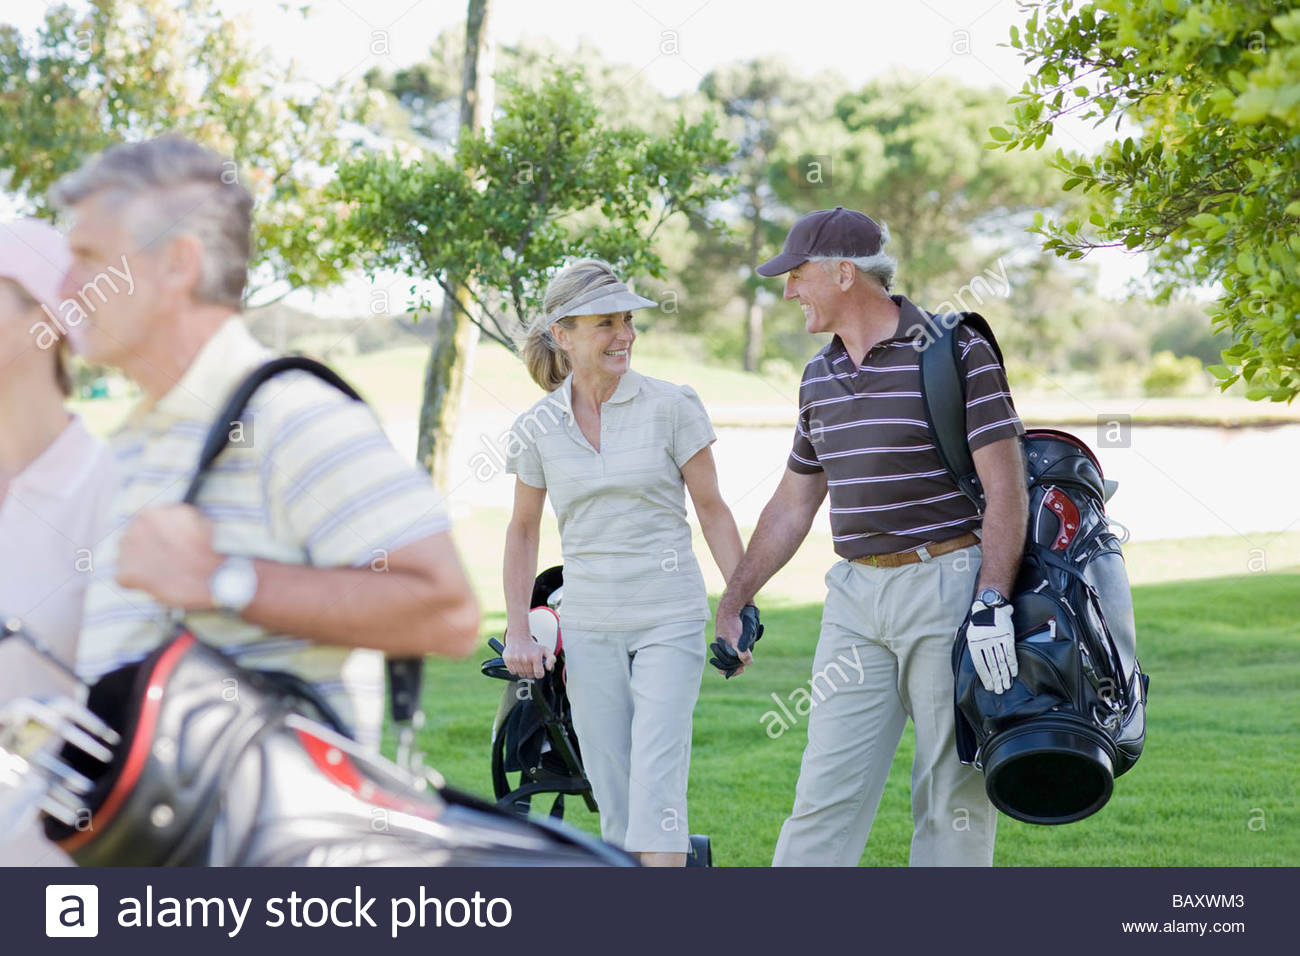 Mature couple holding hands and carrying golf bags - Stock Image